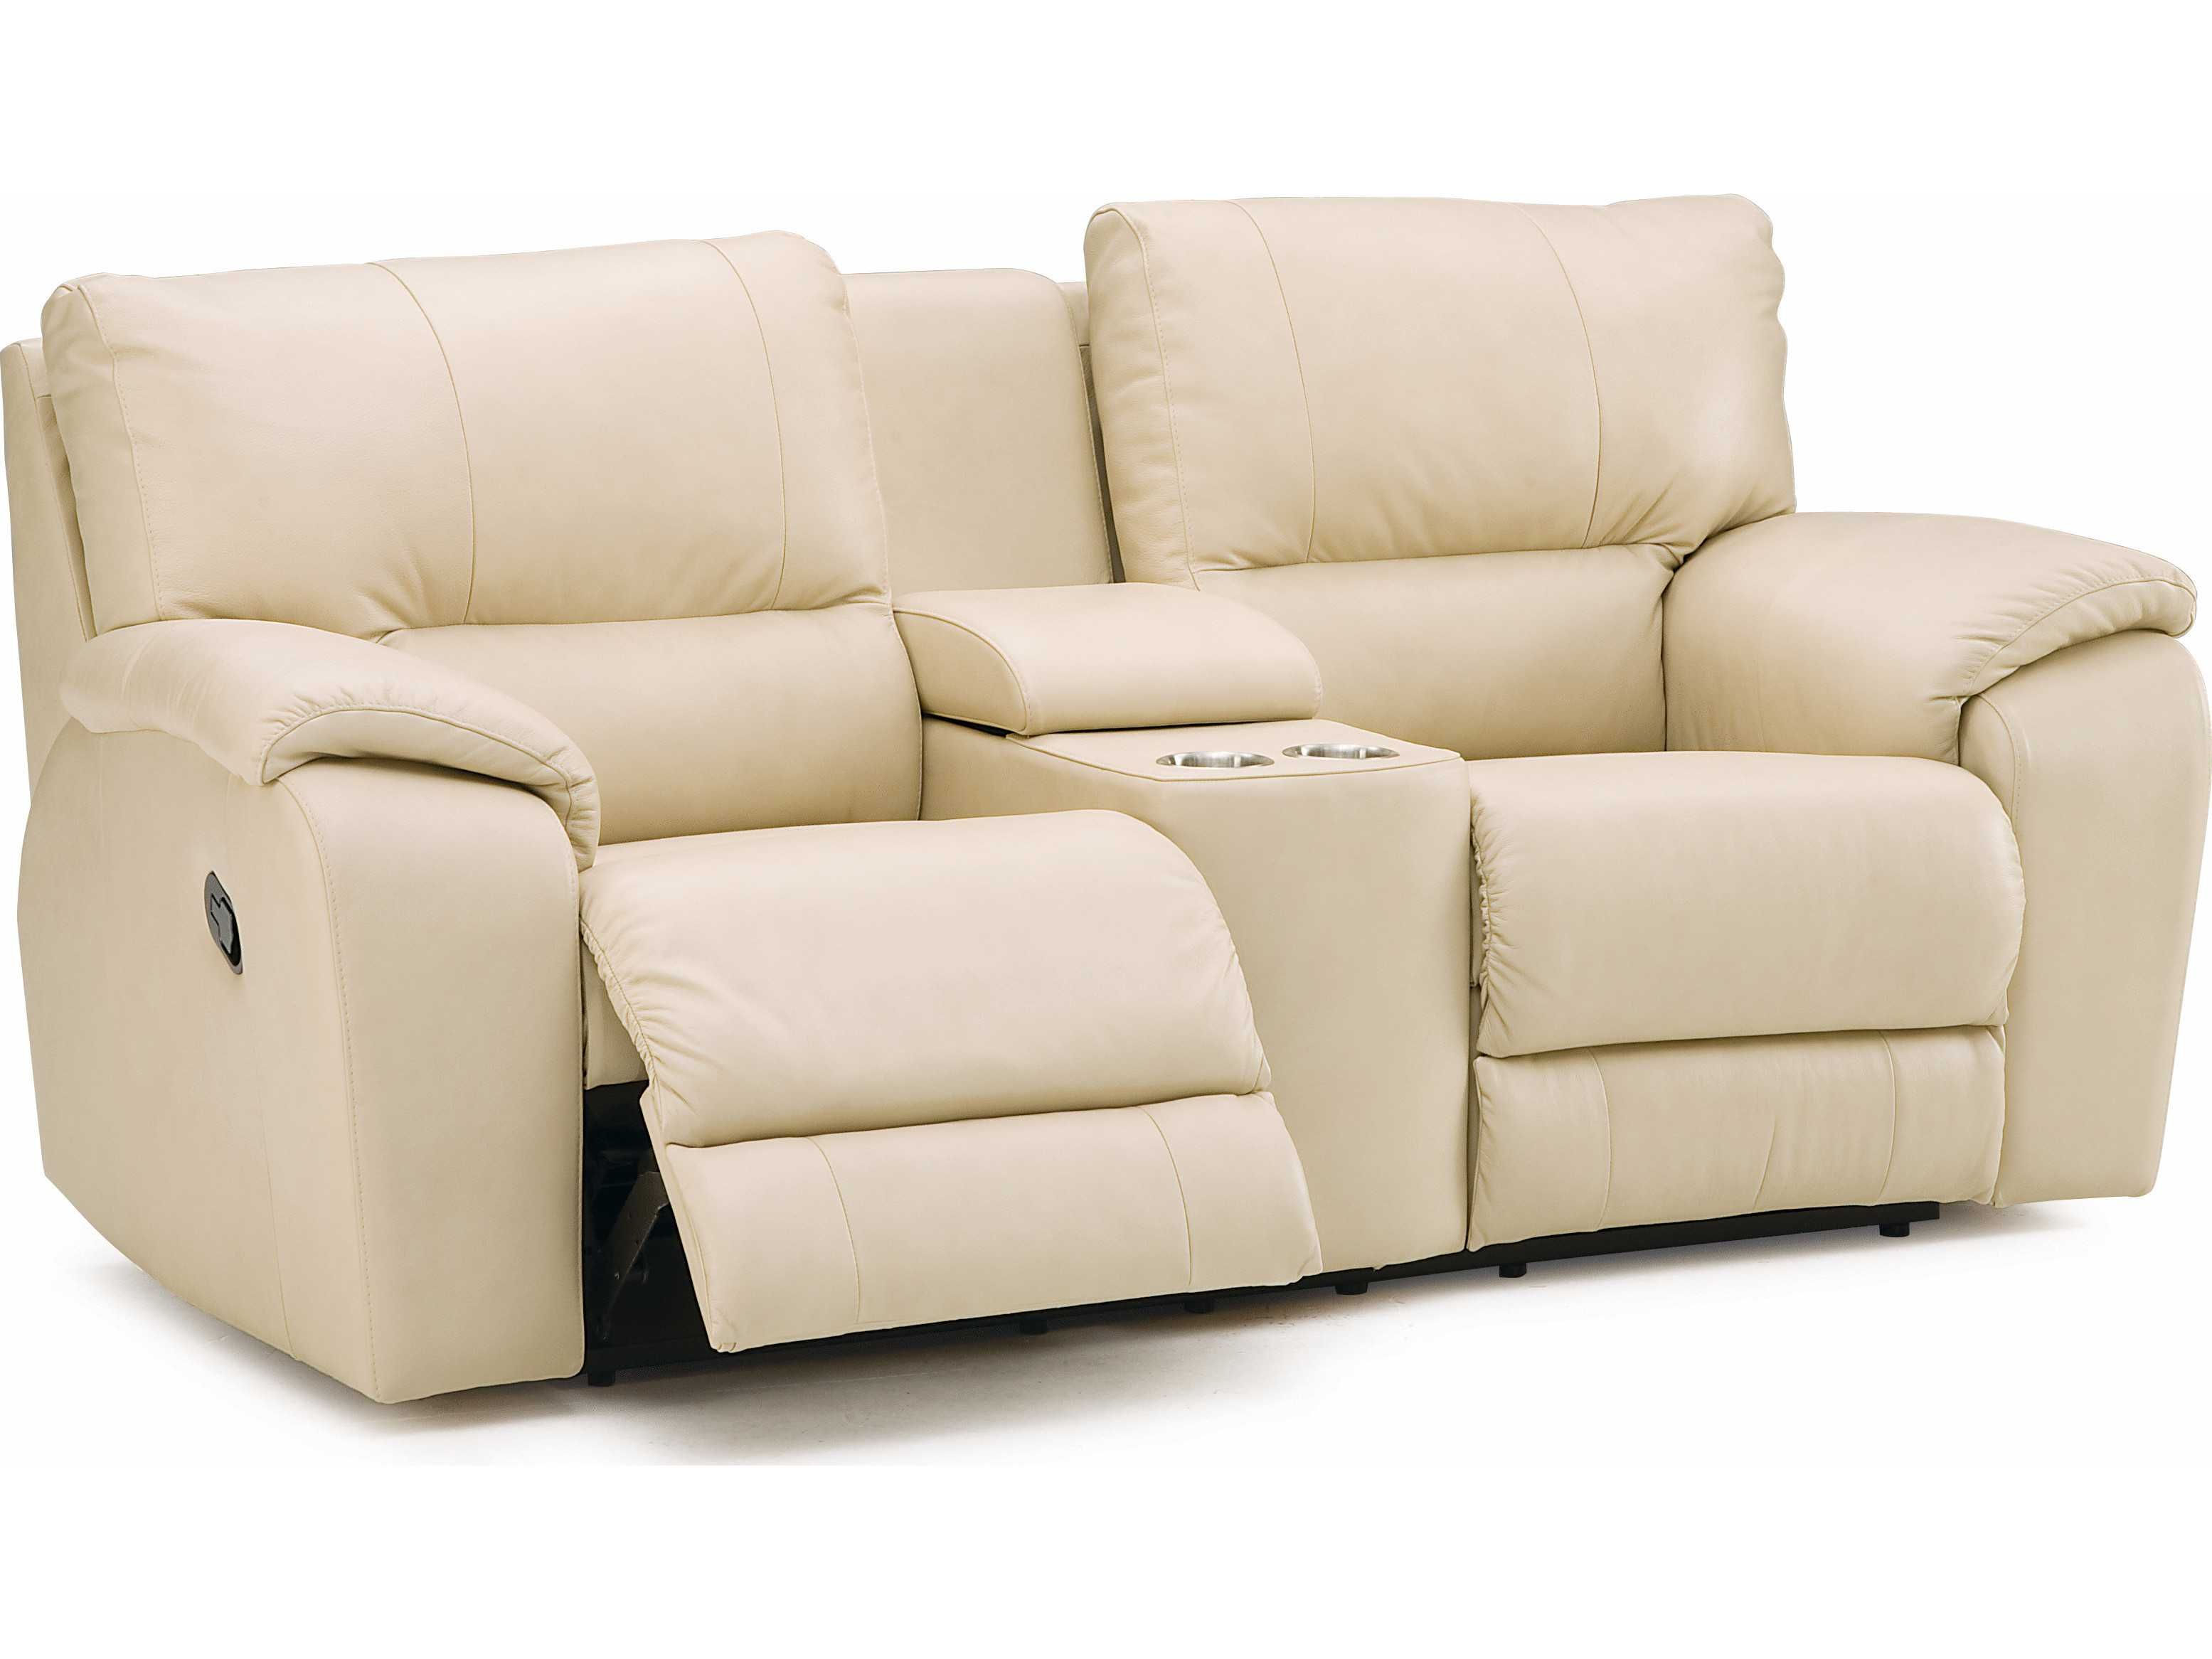 Palliser Sleeper Sofa hmmi